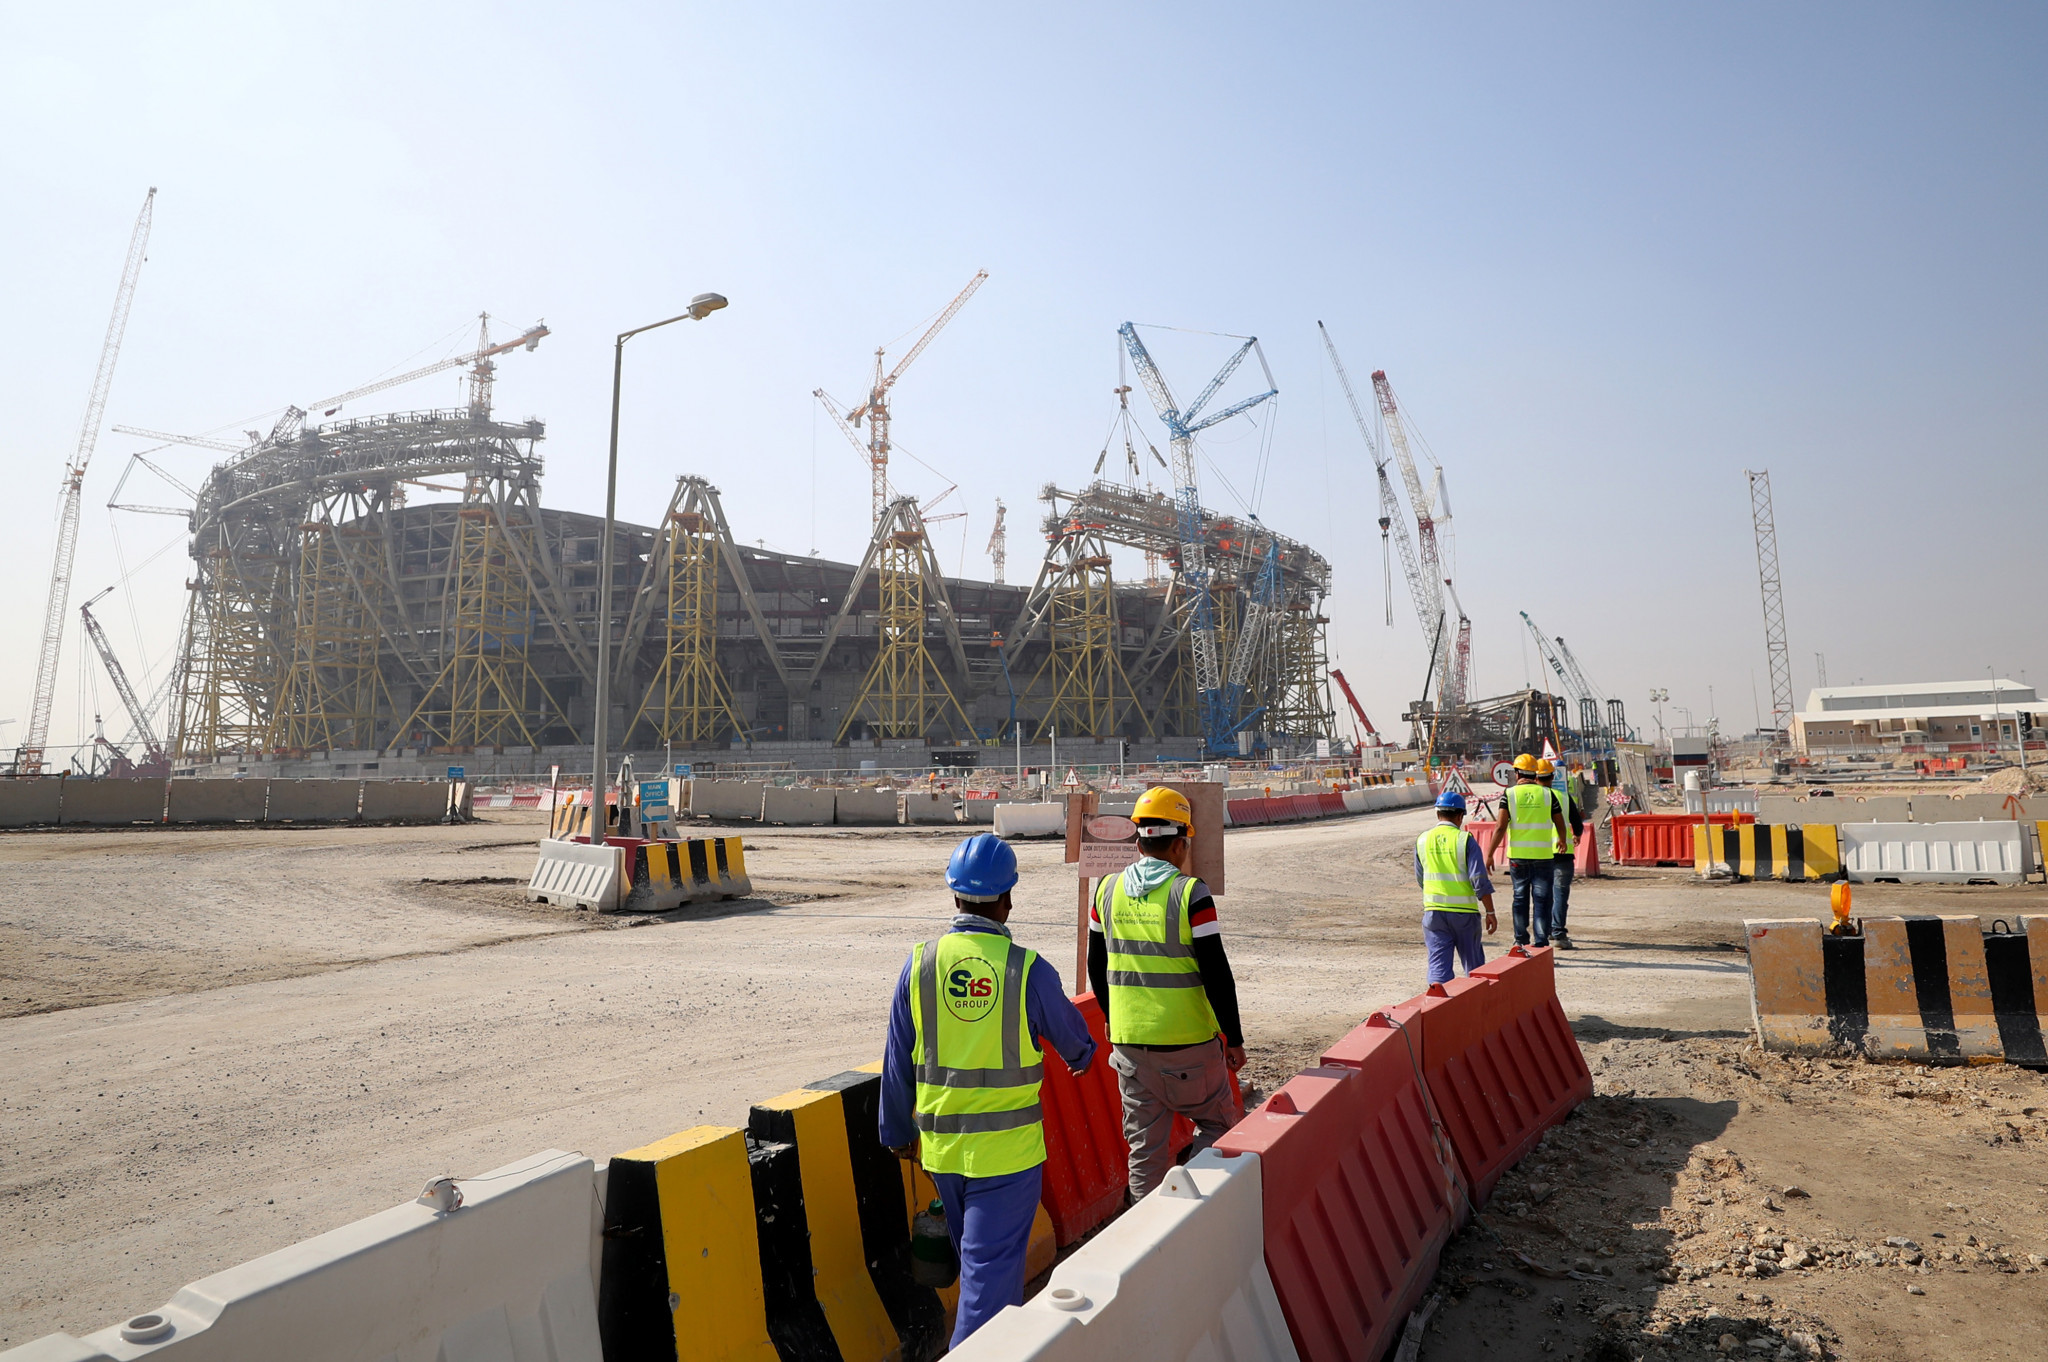 Qatar has faced criticism over migrants' rights at construction sites for the 2022 FIFA World Cup ©Getty Images